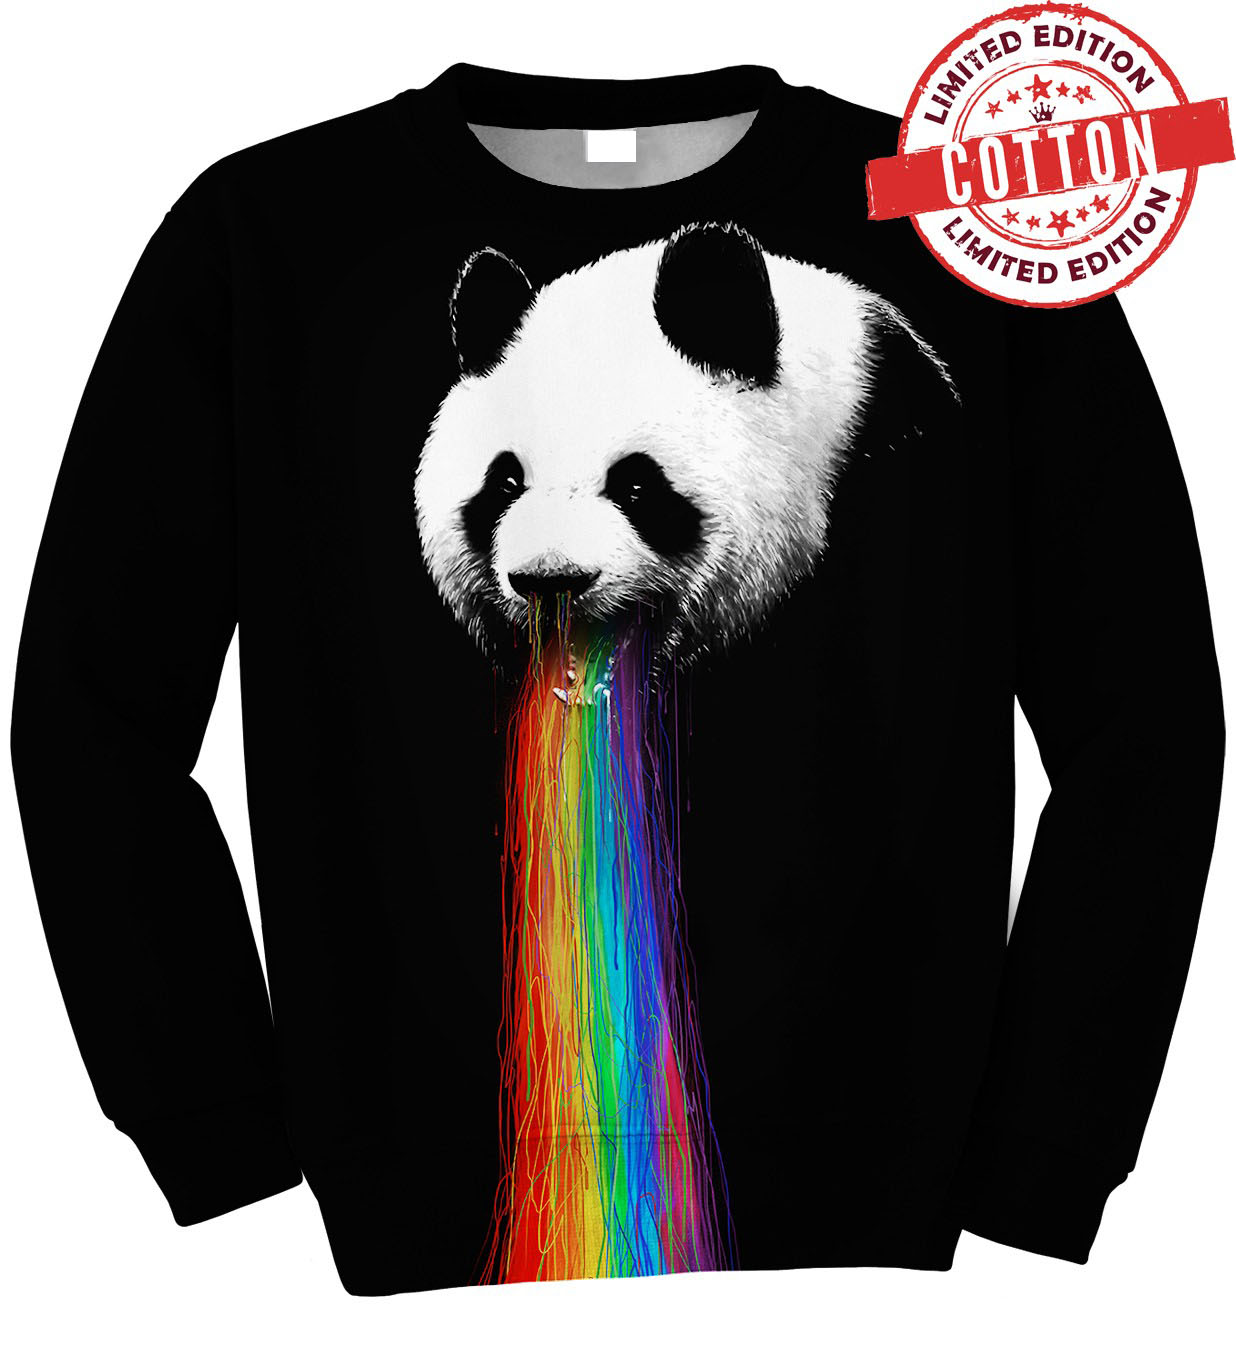 PANDALICIOUS COTTON SWEATER